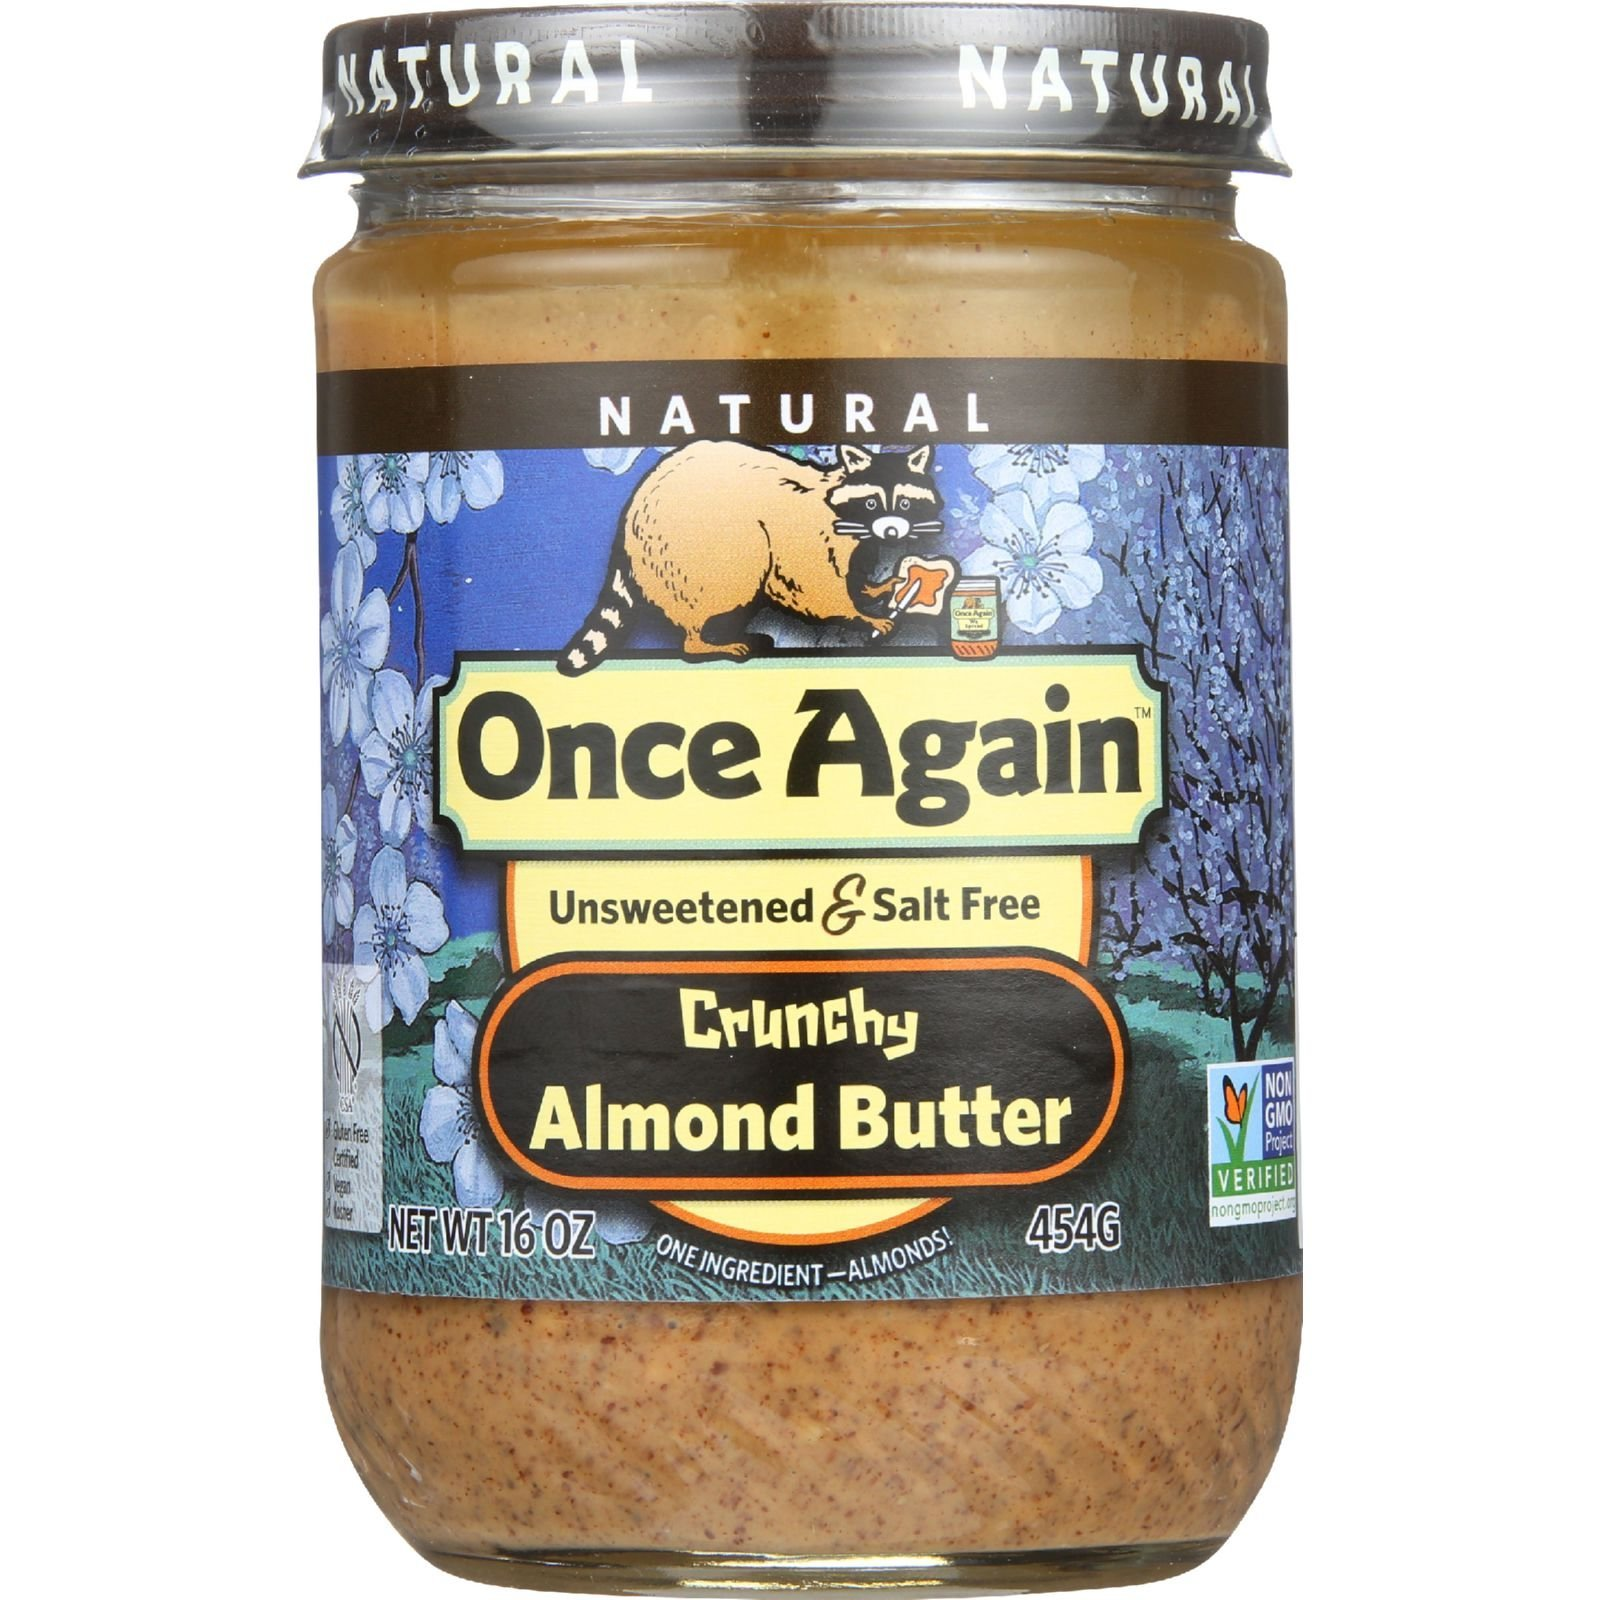 Once Again Almond Butter - All Natural - Crunchy - Salt Free - 16 oz - case of 12 - Unsweetened - Gluten Free